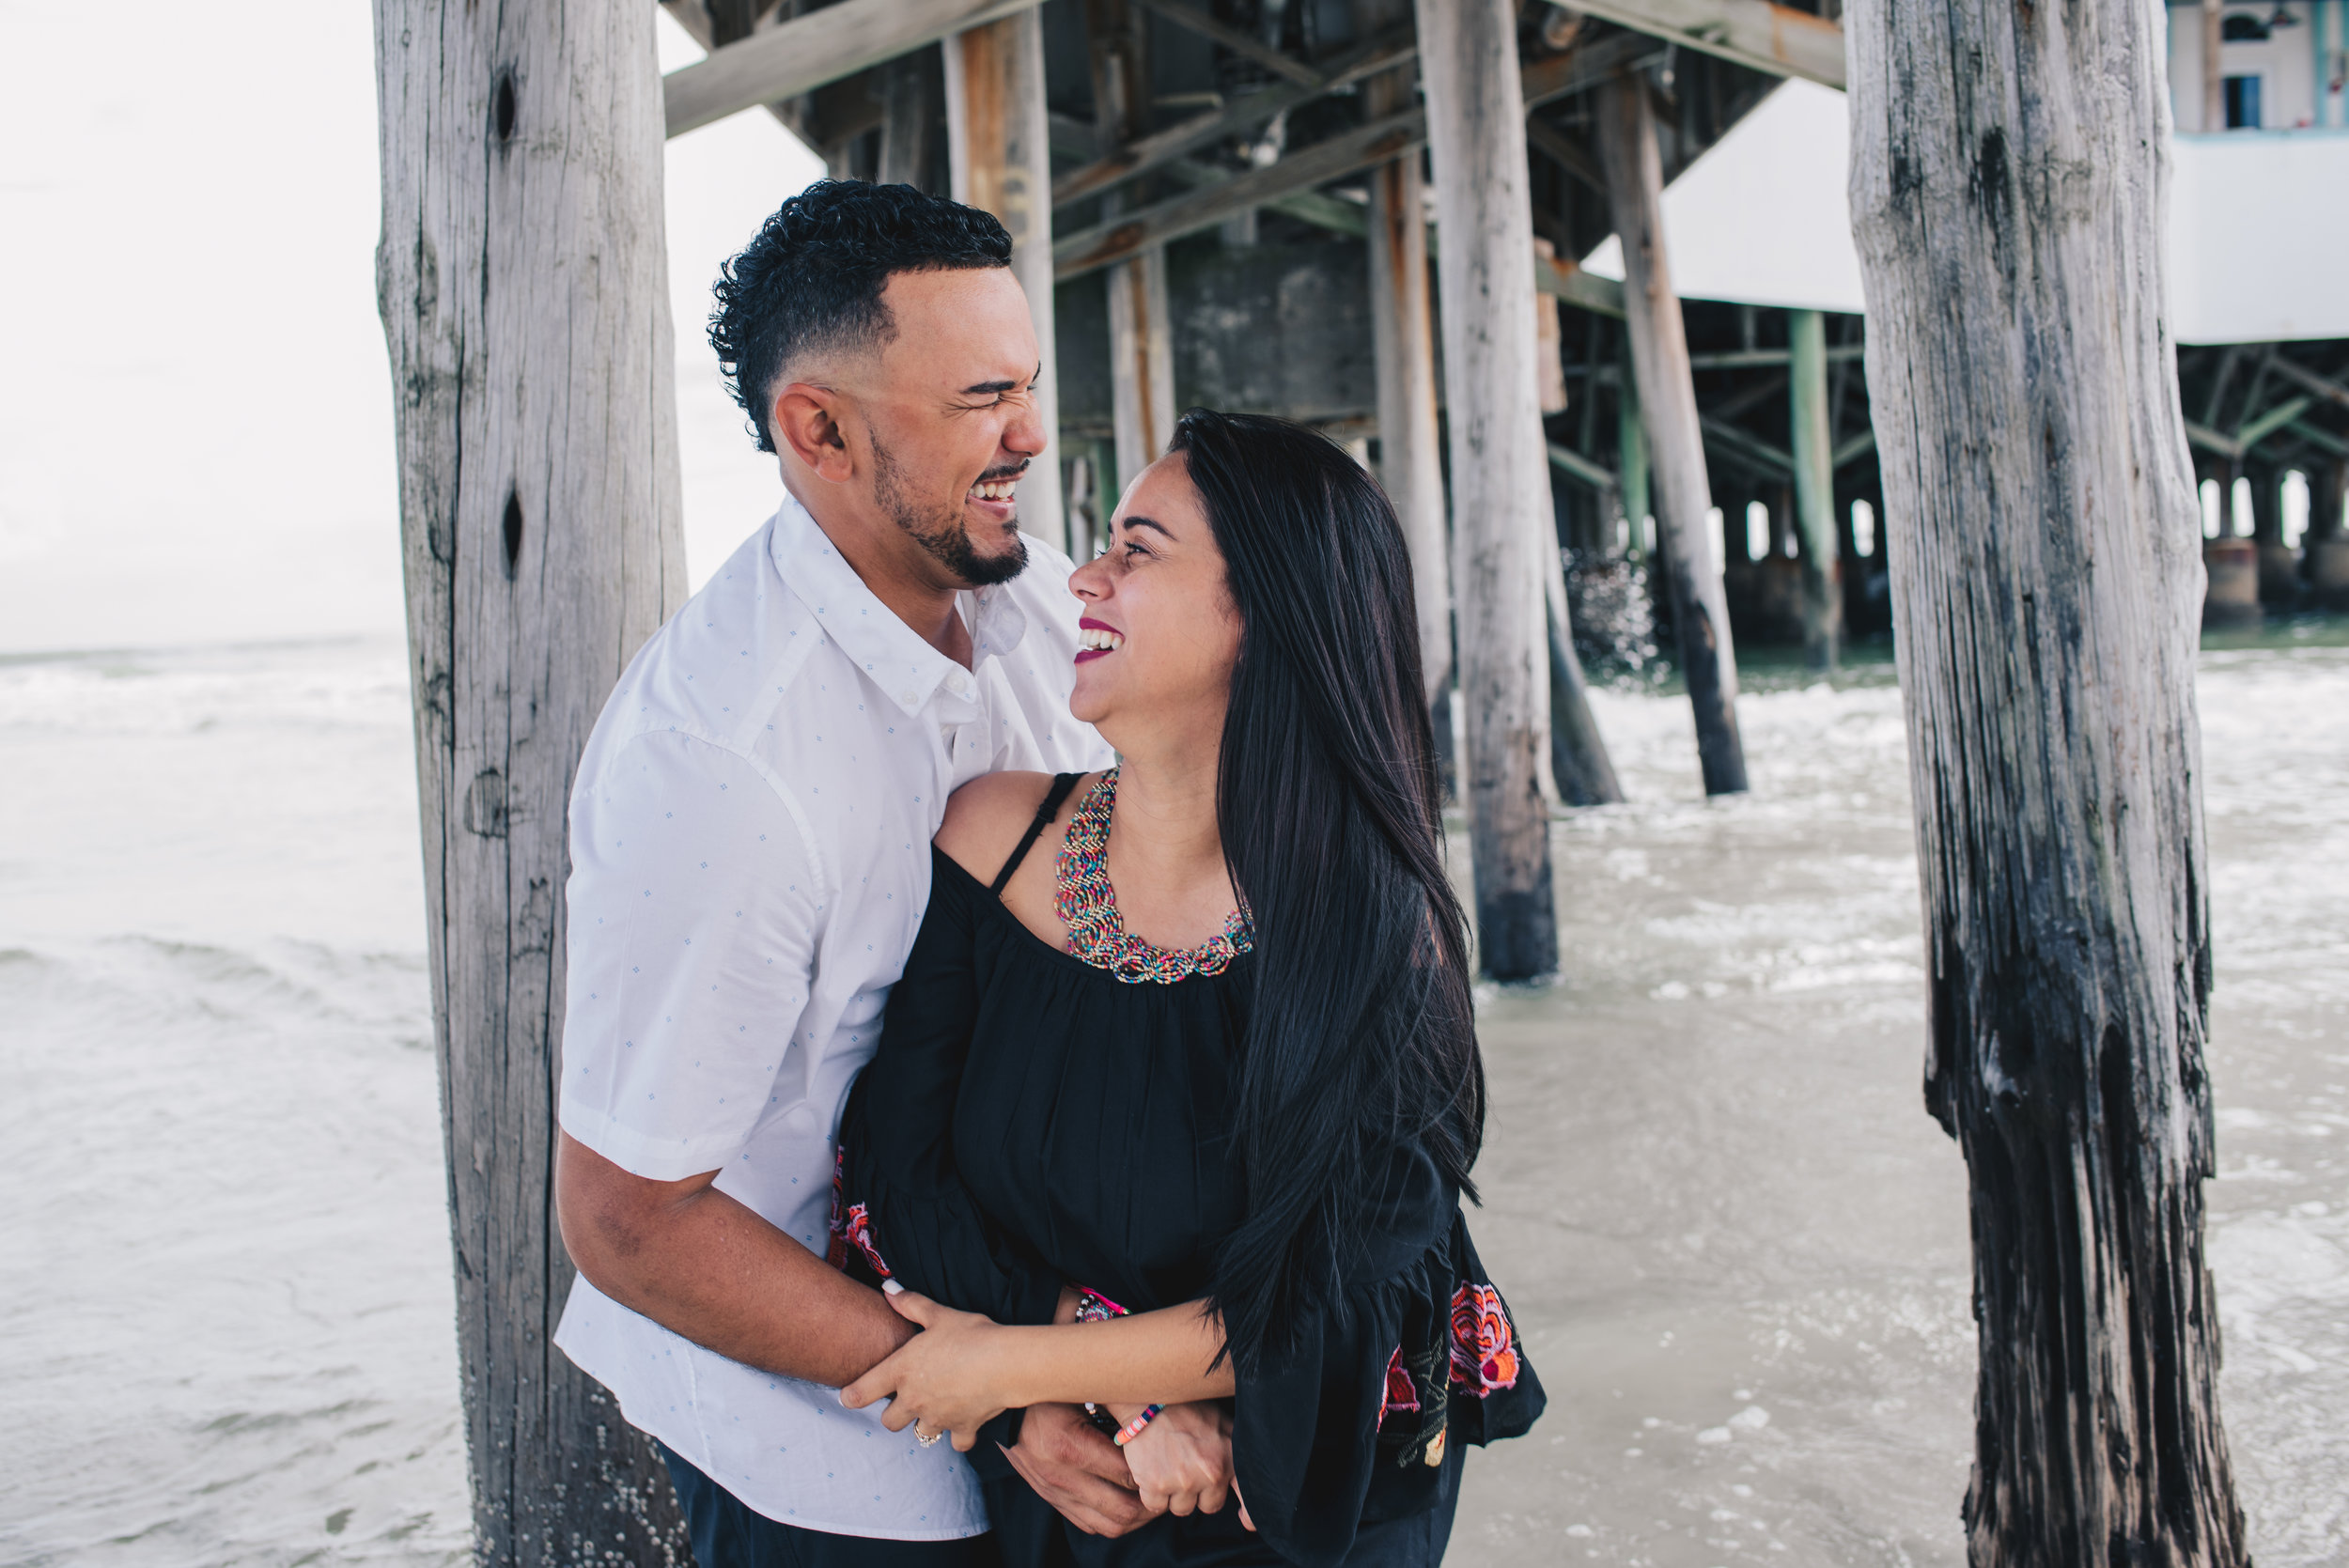 Los-Vargas-Photo-Boardwalk-Summer-Engagement-Session-1183.jpg